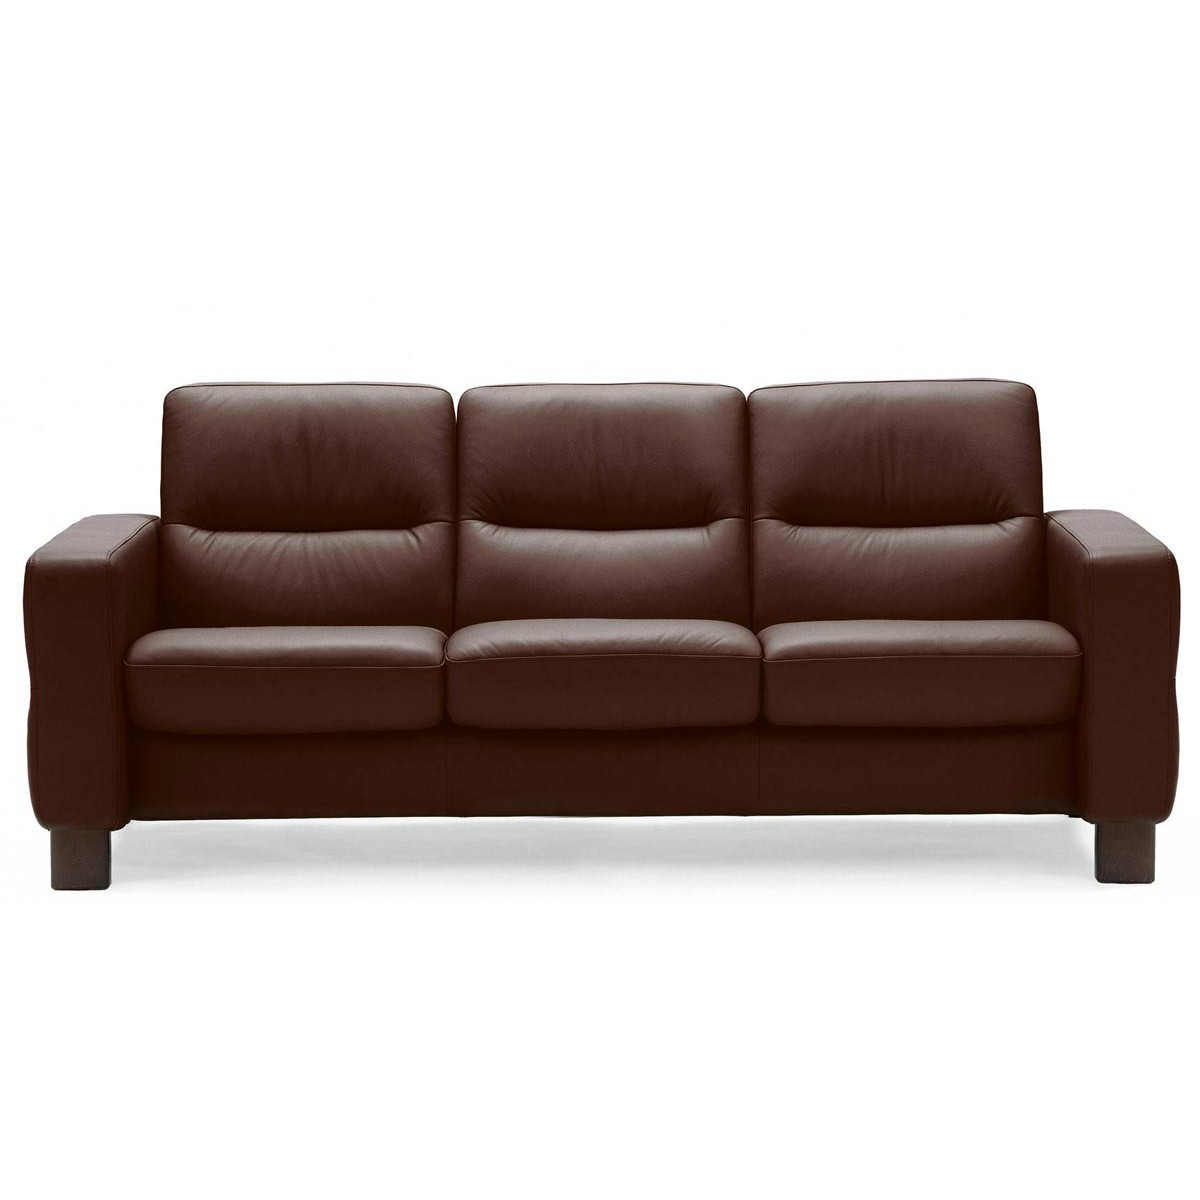 Stressless Wave Sofa Reviews Stressless Wave Low Back Sofa From 2 995 00 By Stressless